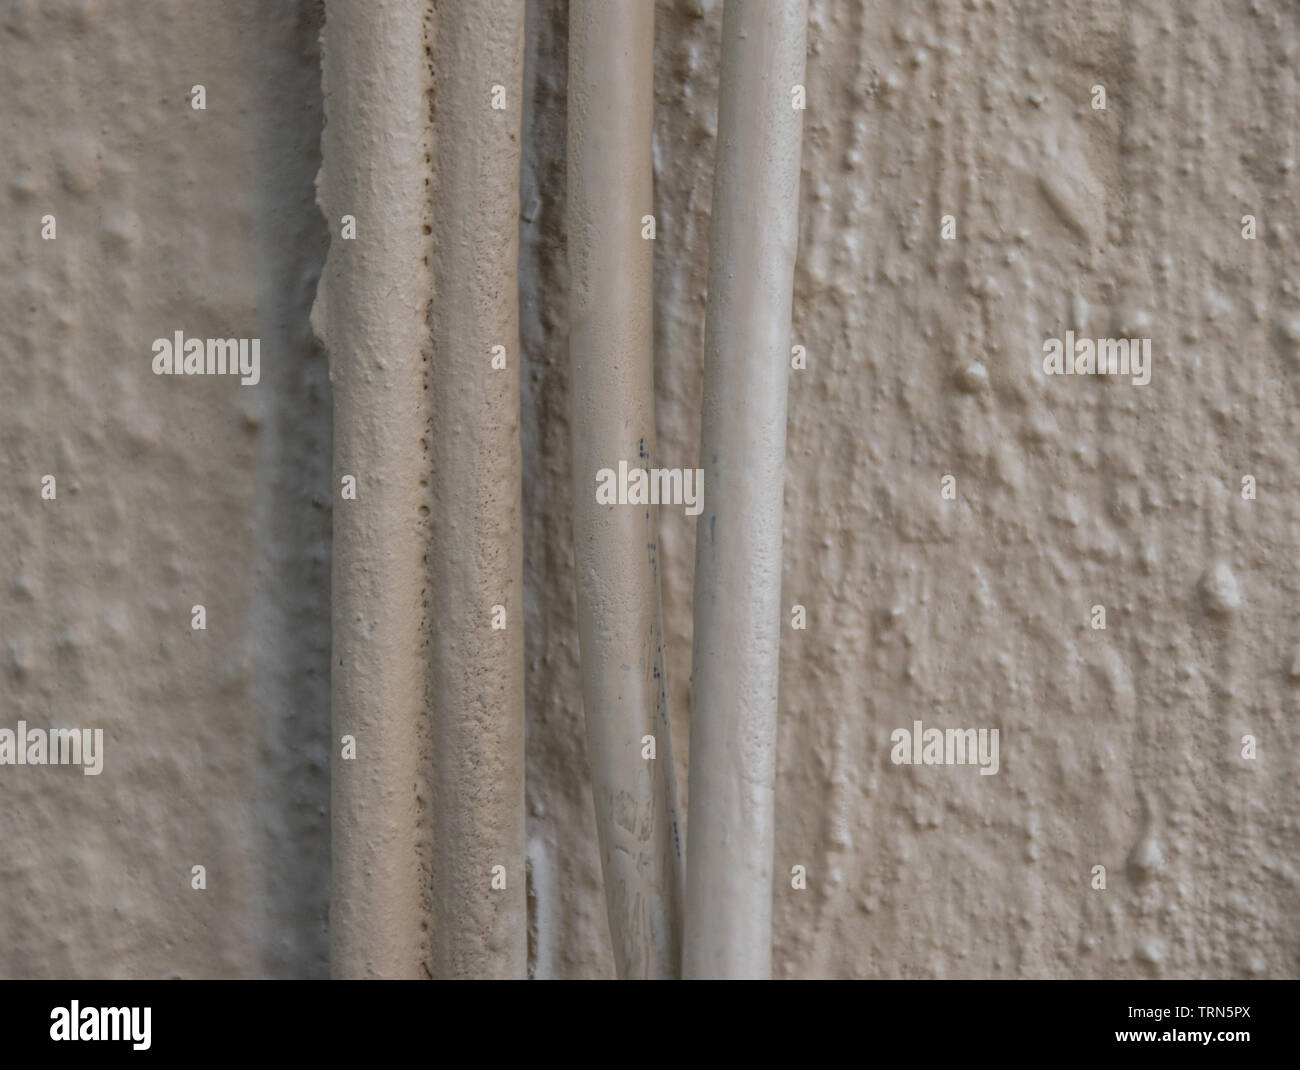 Network cabling down the side of a building up close and isolated image with copy space - Stock Image